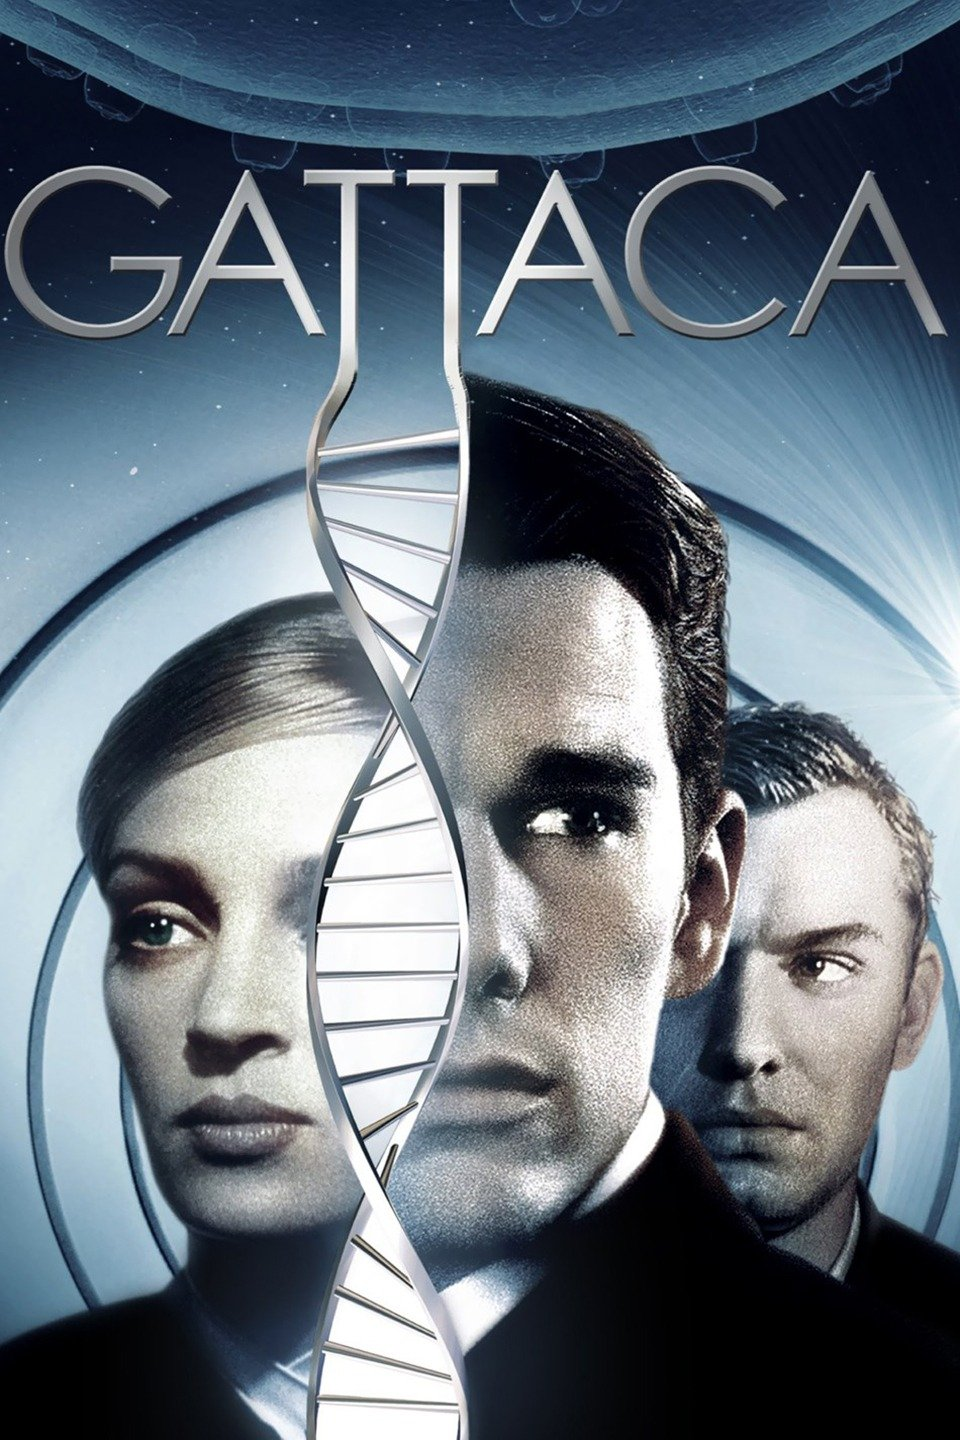 year english archives english tutor lessonsenglish tutor lessons in aos1 unit 2 reading and comparing texts for some students in year 11 mainstream english they will compare the film gattaca directed by andrew niccol